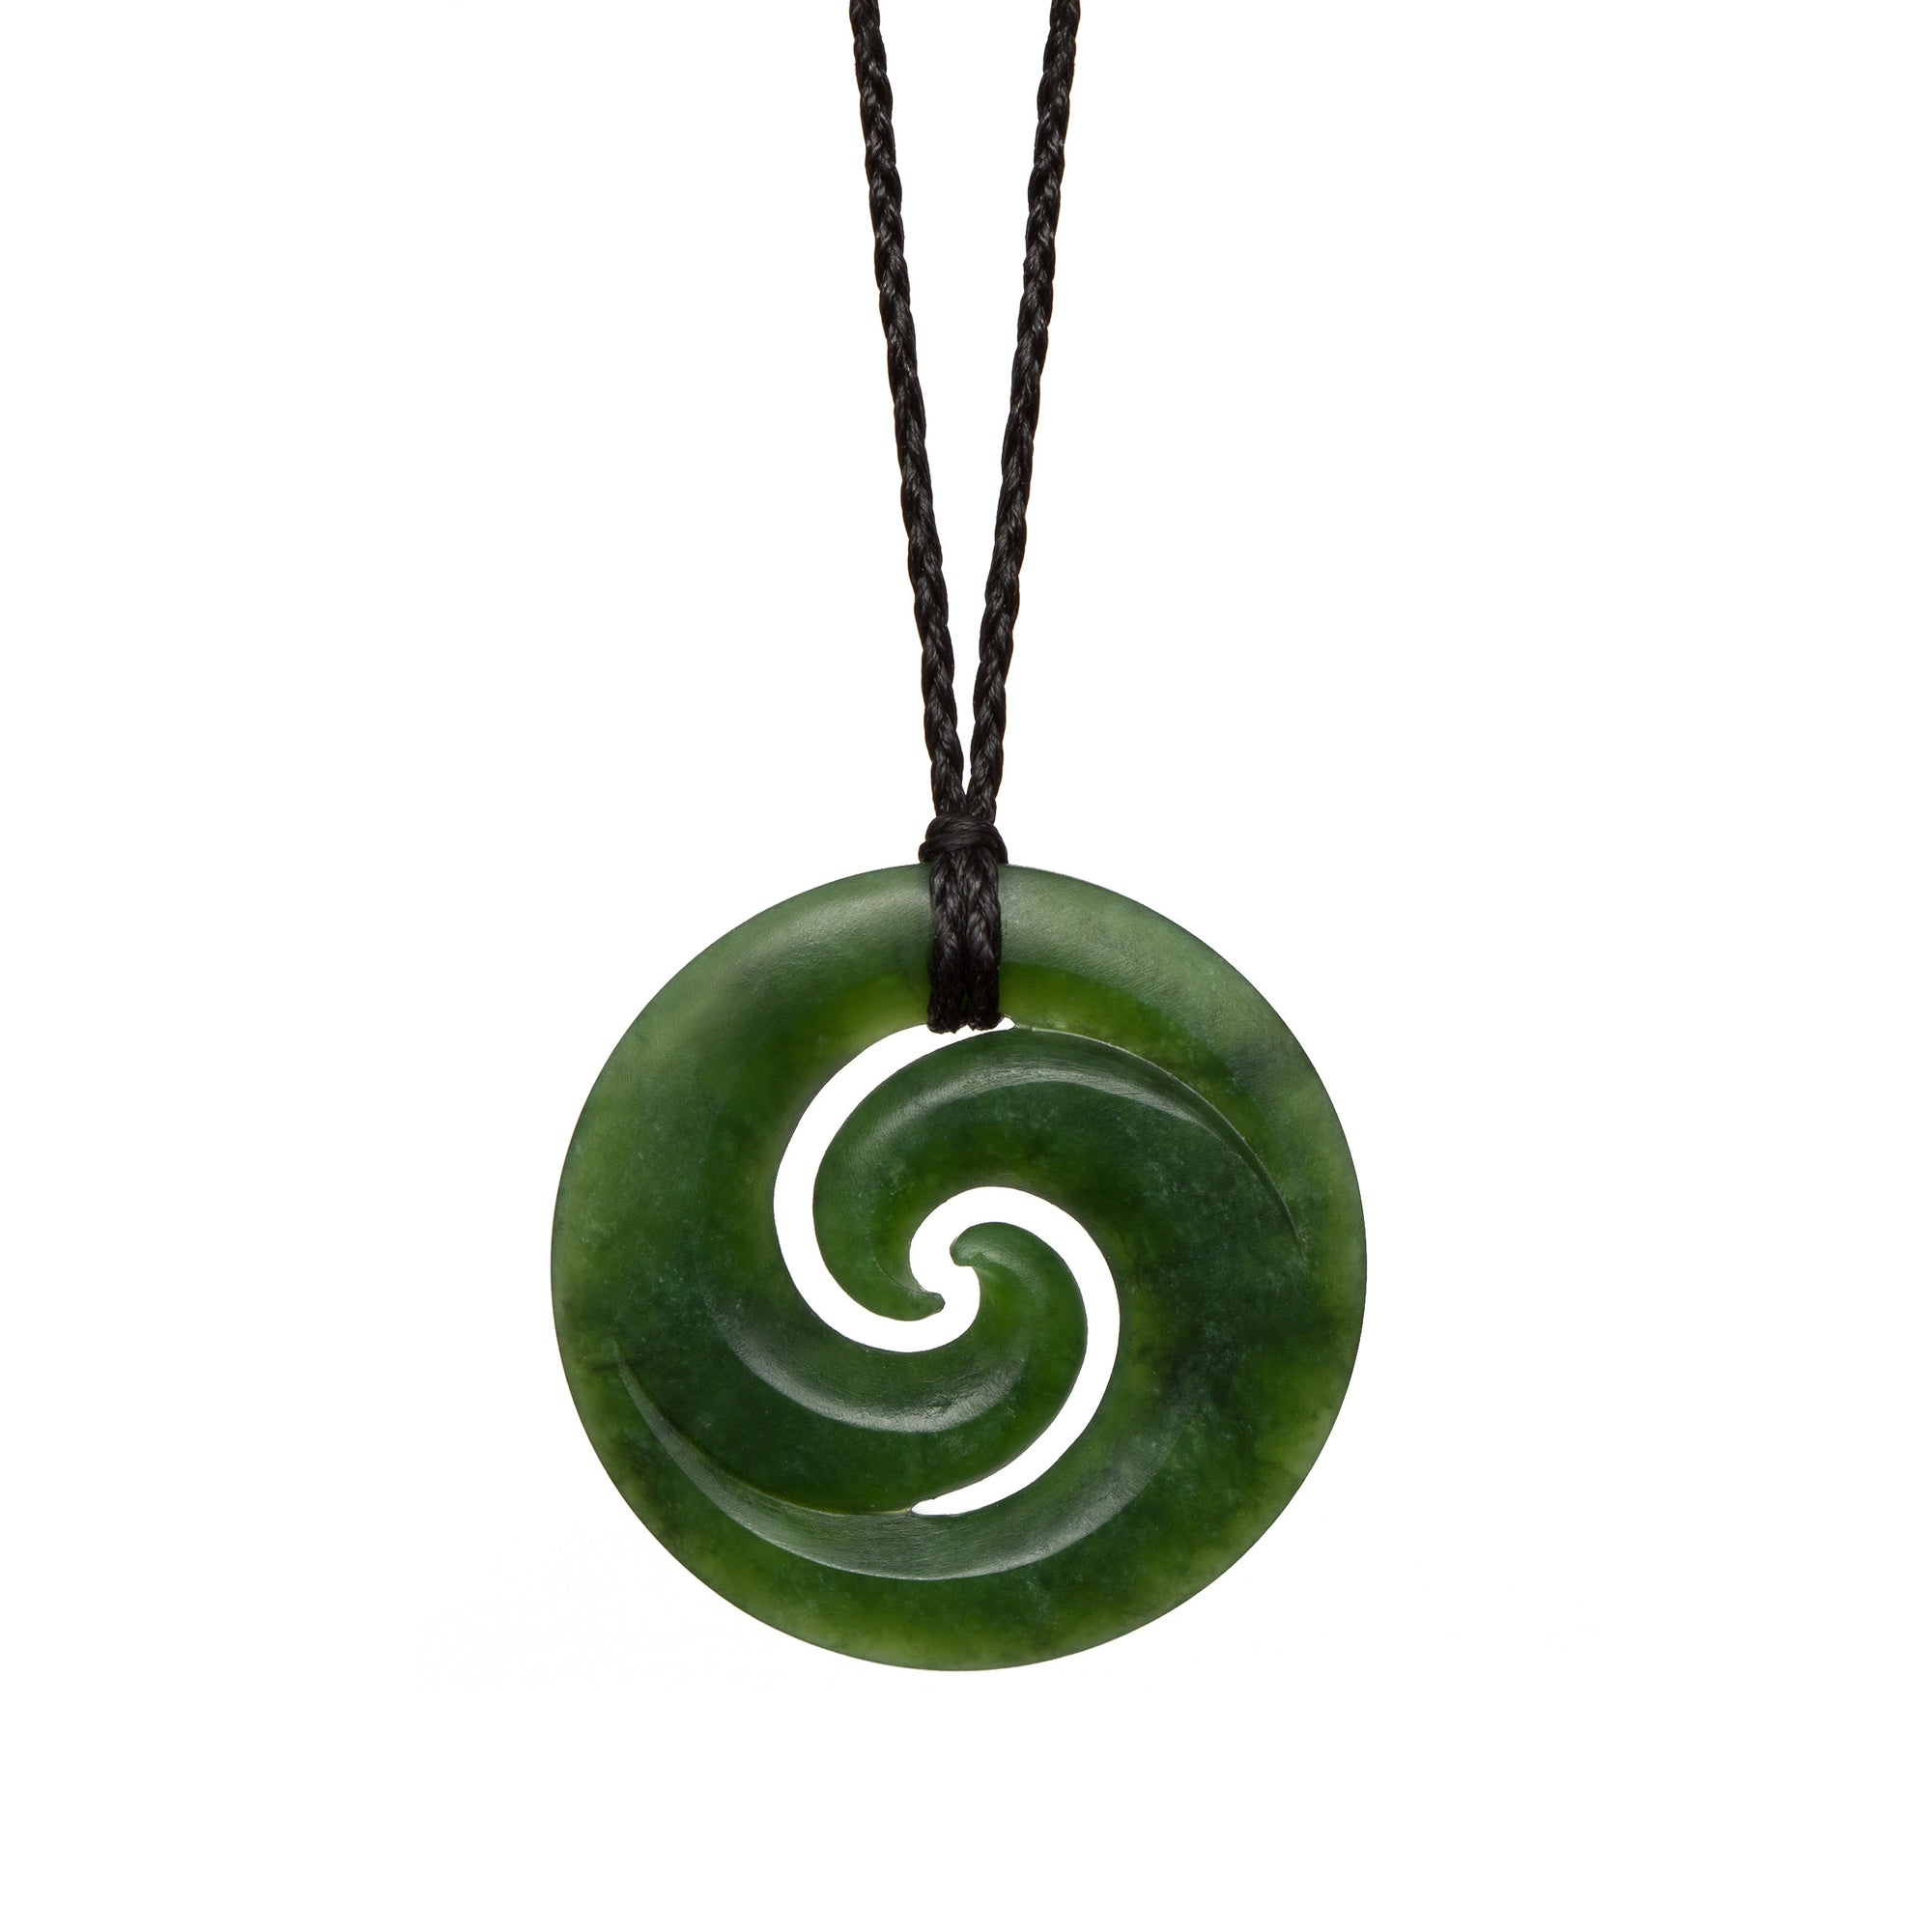 New Zealand Pounamu Double Koru Necklace